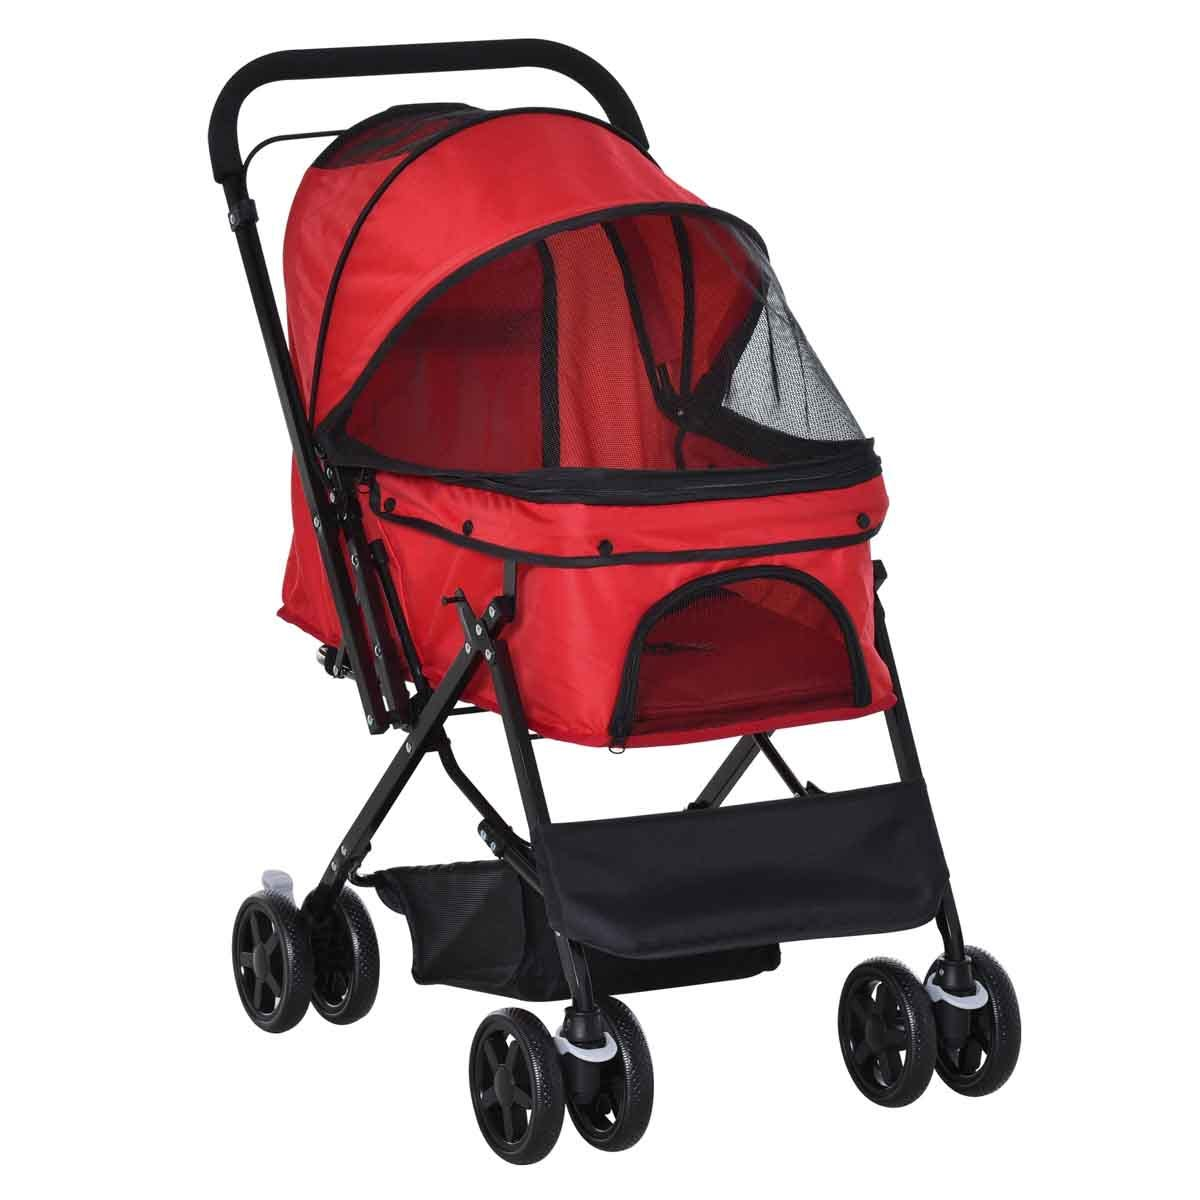 PawHut Pet Foldable Stroller/Travel Carriage with Reversible Handle - Red